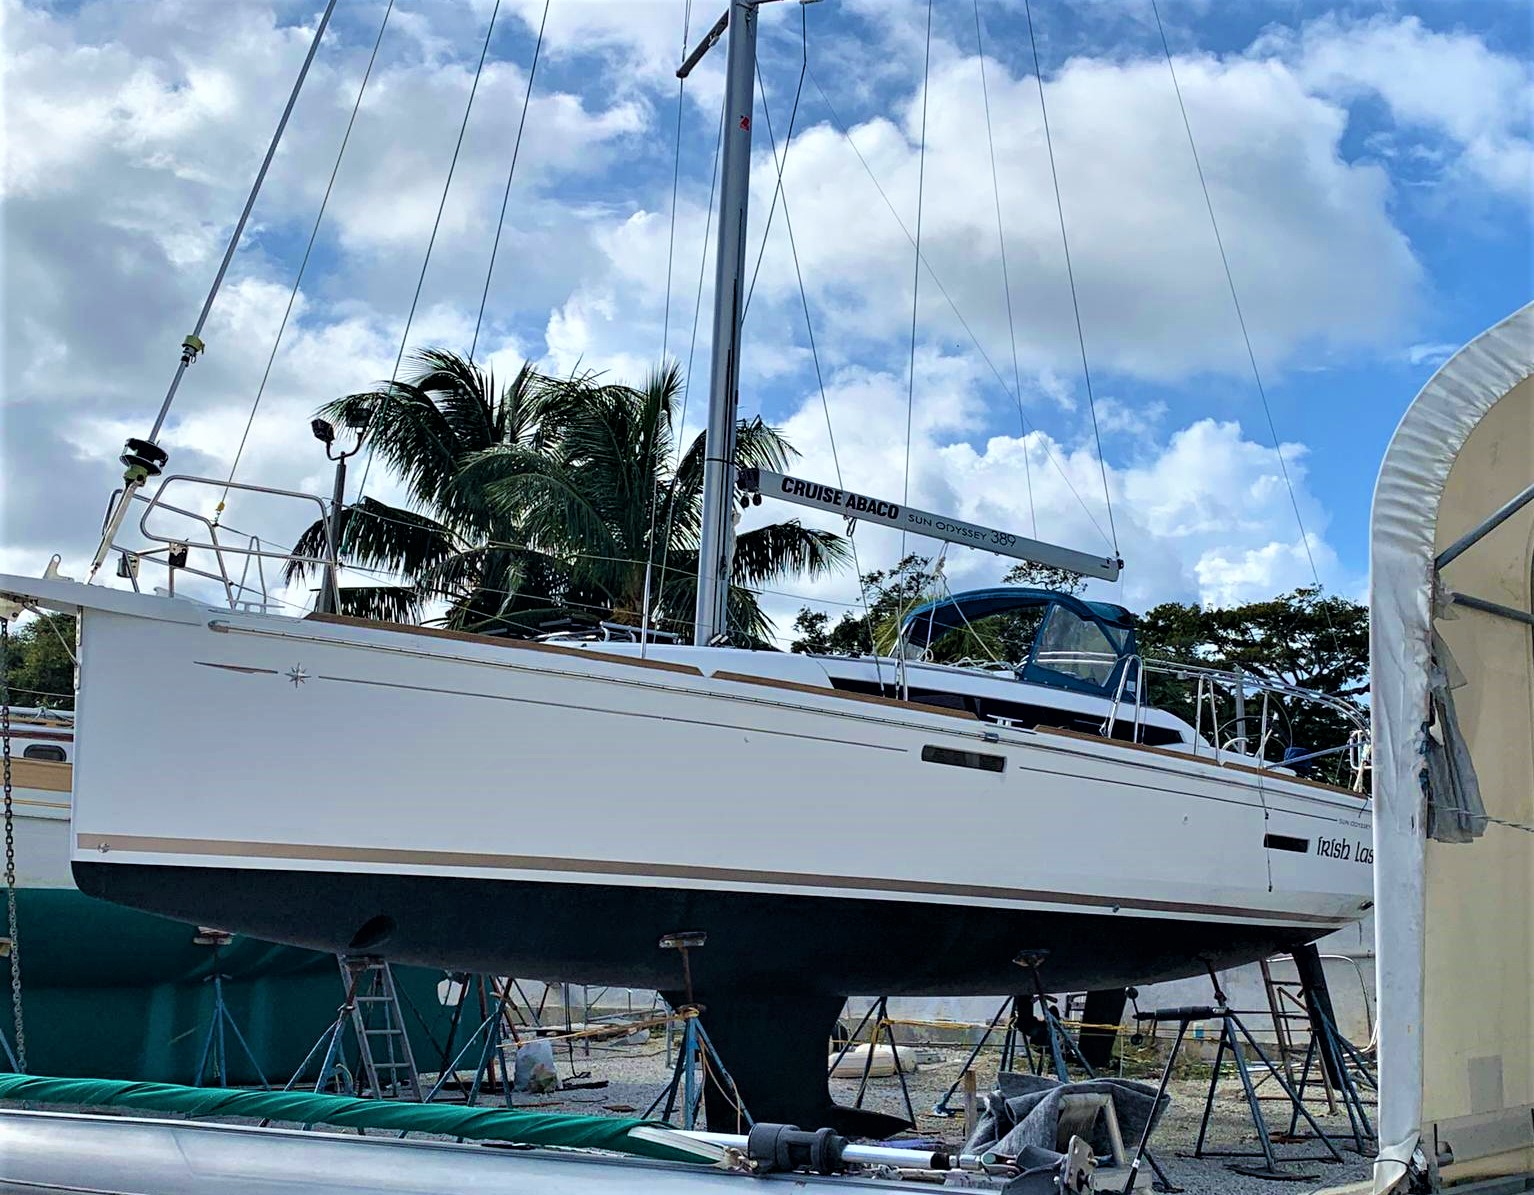 Jeanneau Sun Odyssey 389 Irish Lass Rig Installed! (Current Photo)